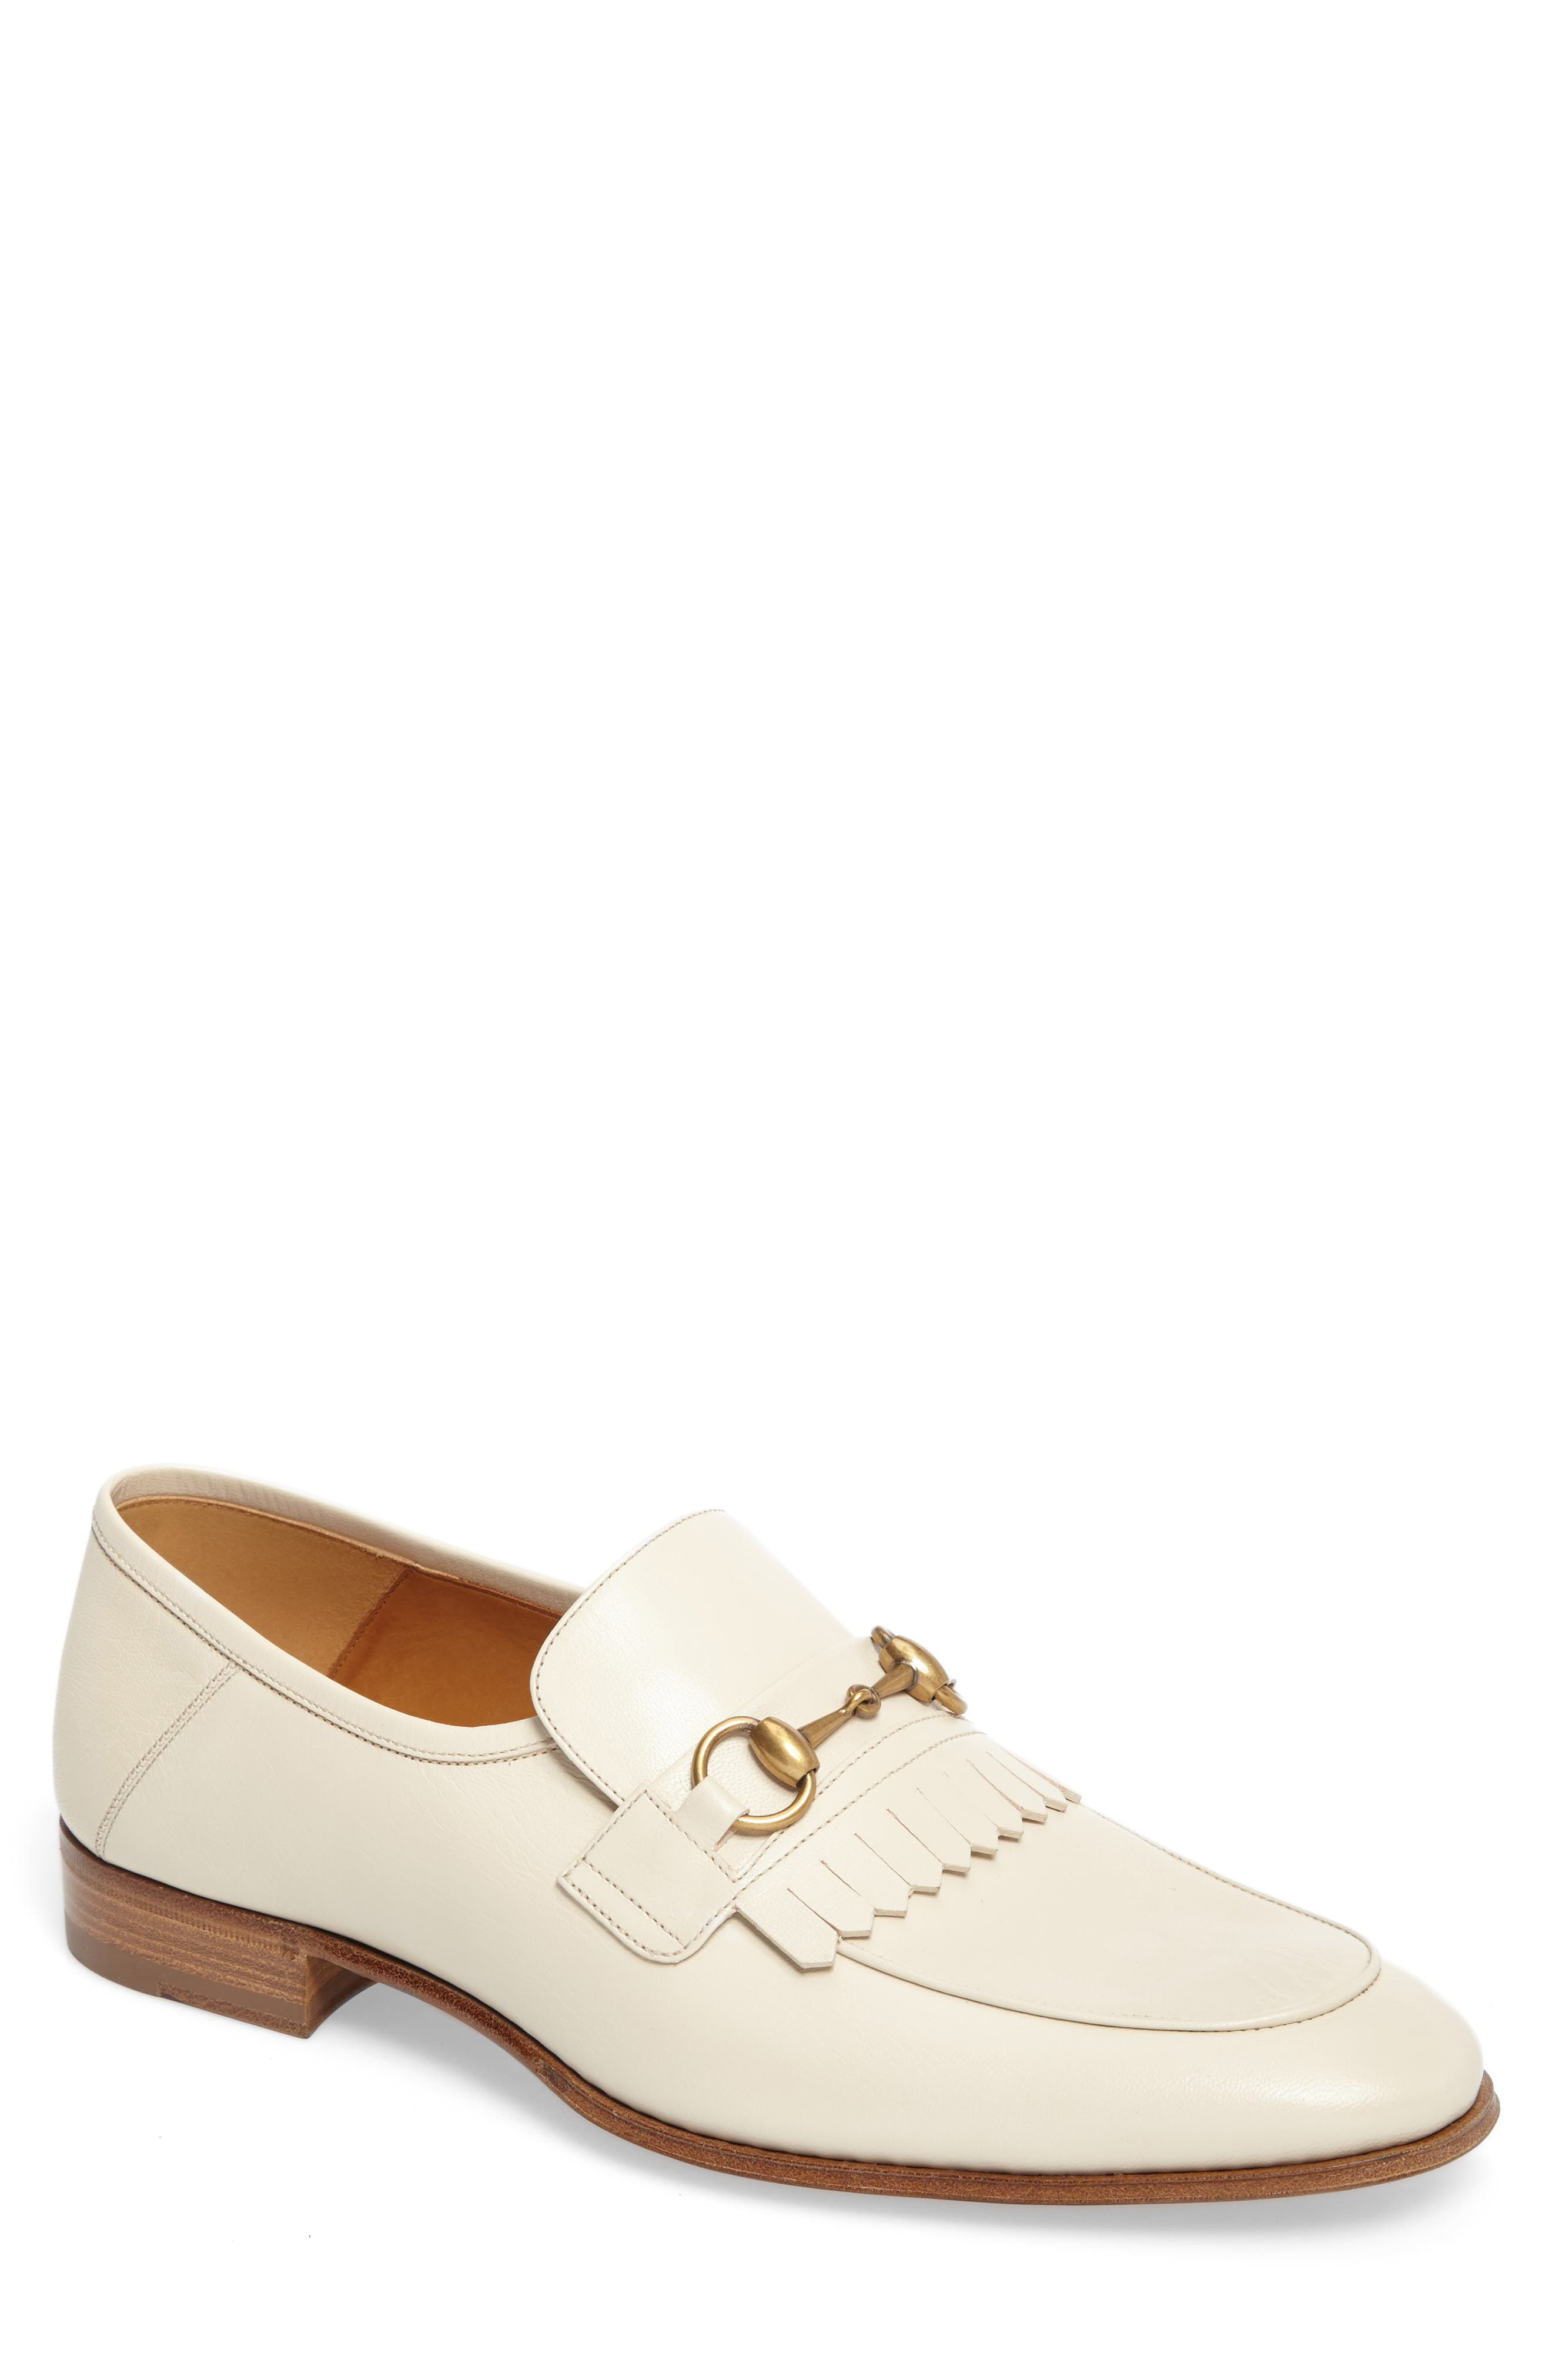 Leather Fringe Horsebit Loafer,                         Main,                         color, 141